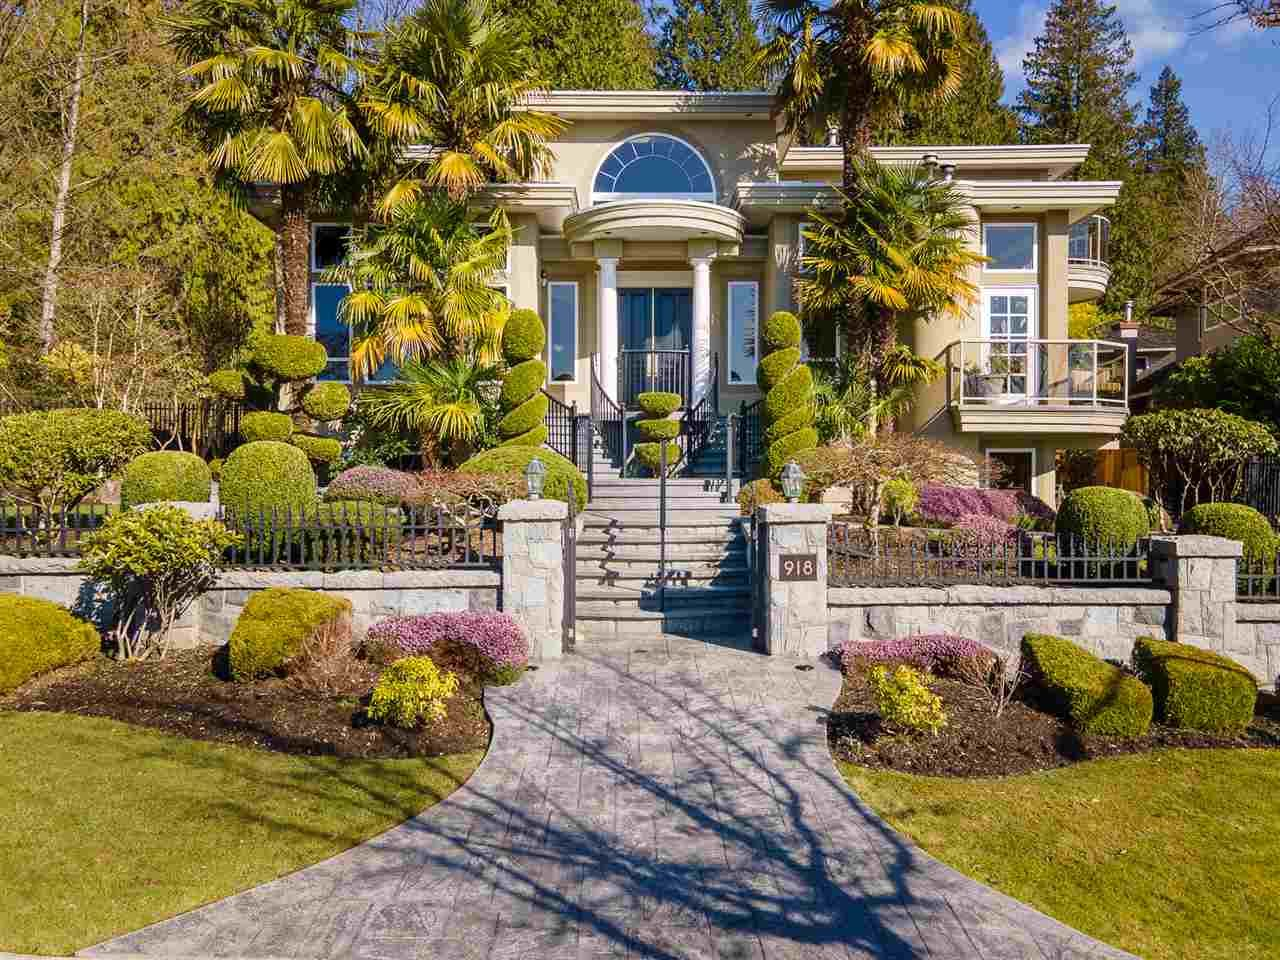 Main Photo: 918 BURNWOOD Avenue in Burnaby: Simon Fraser Univer. House for sale (Burnaby North)  : MLS®# R2560007